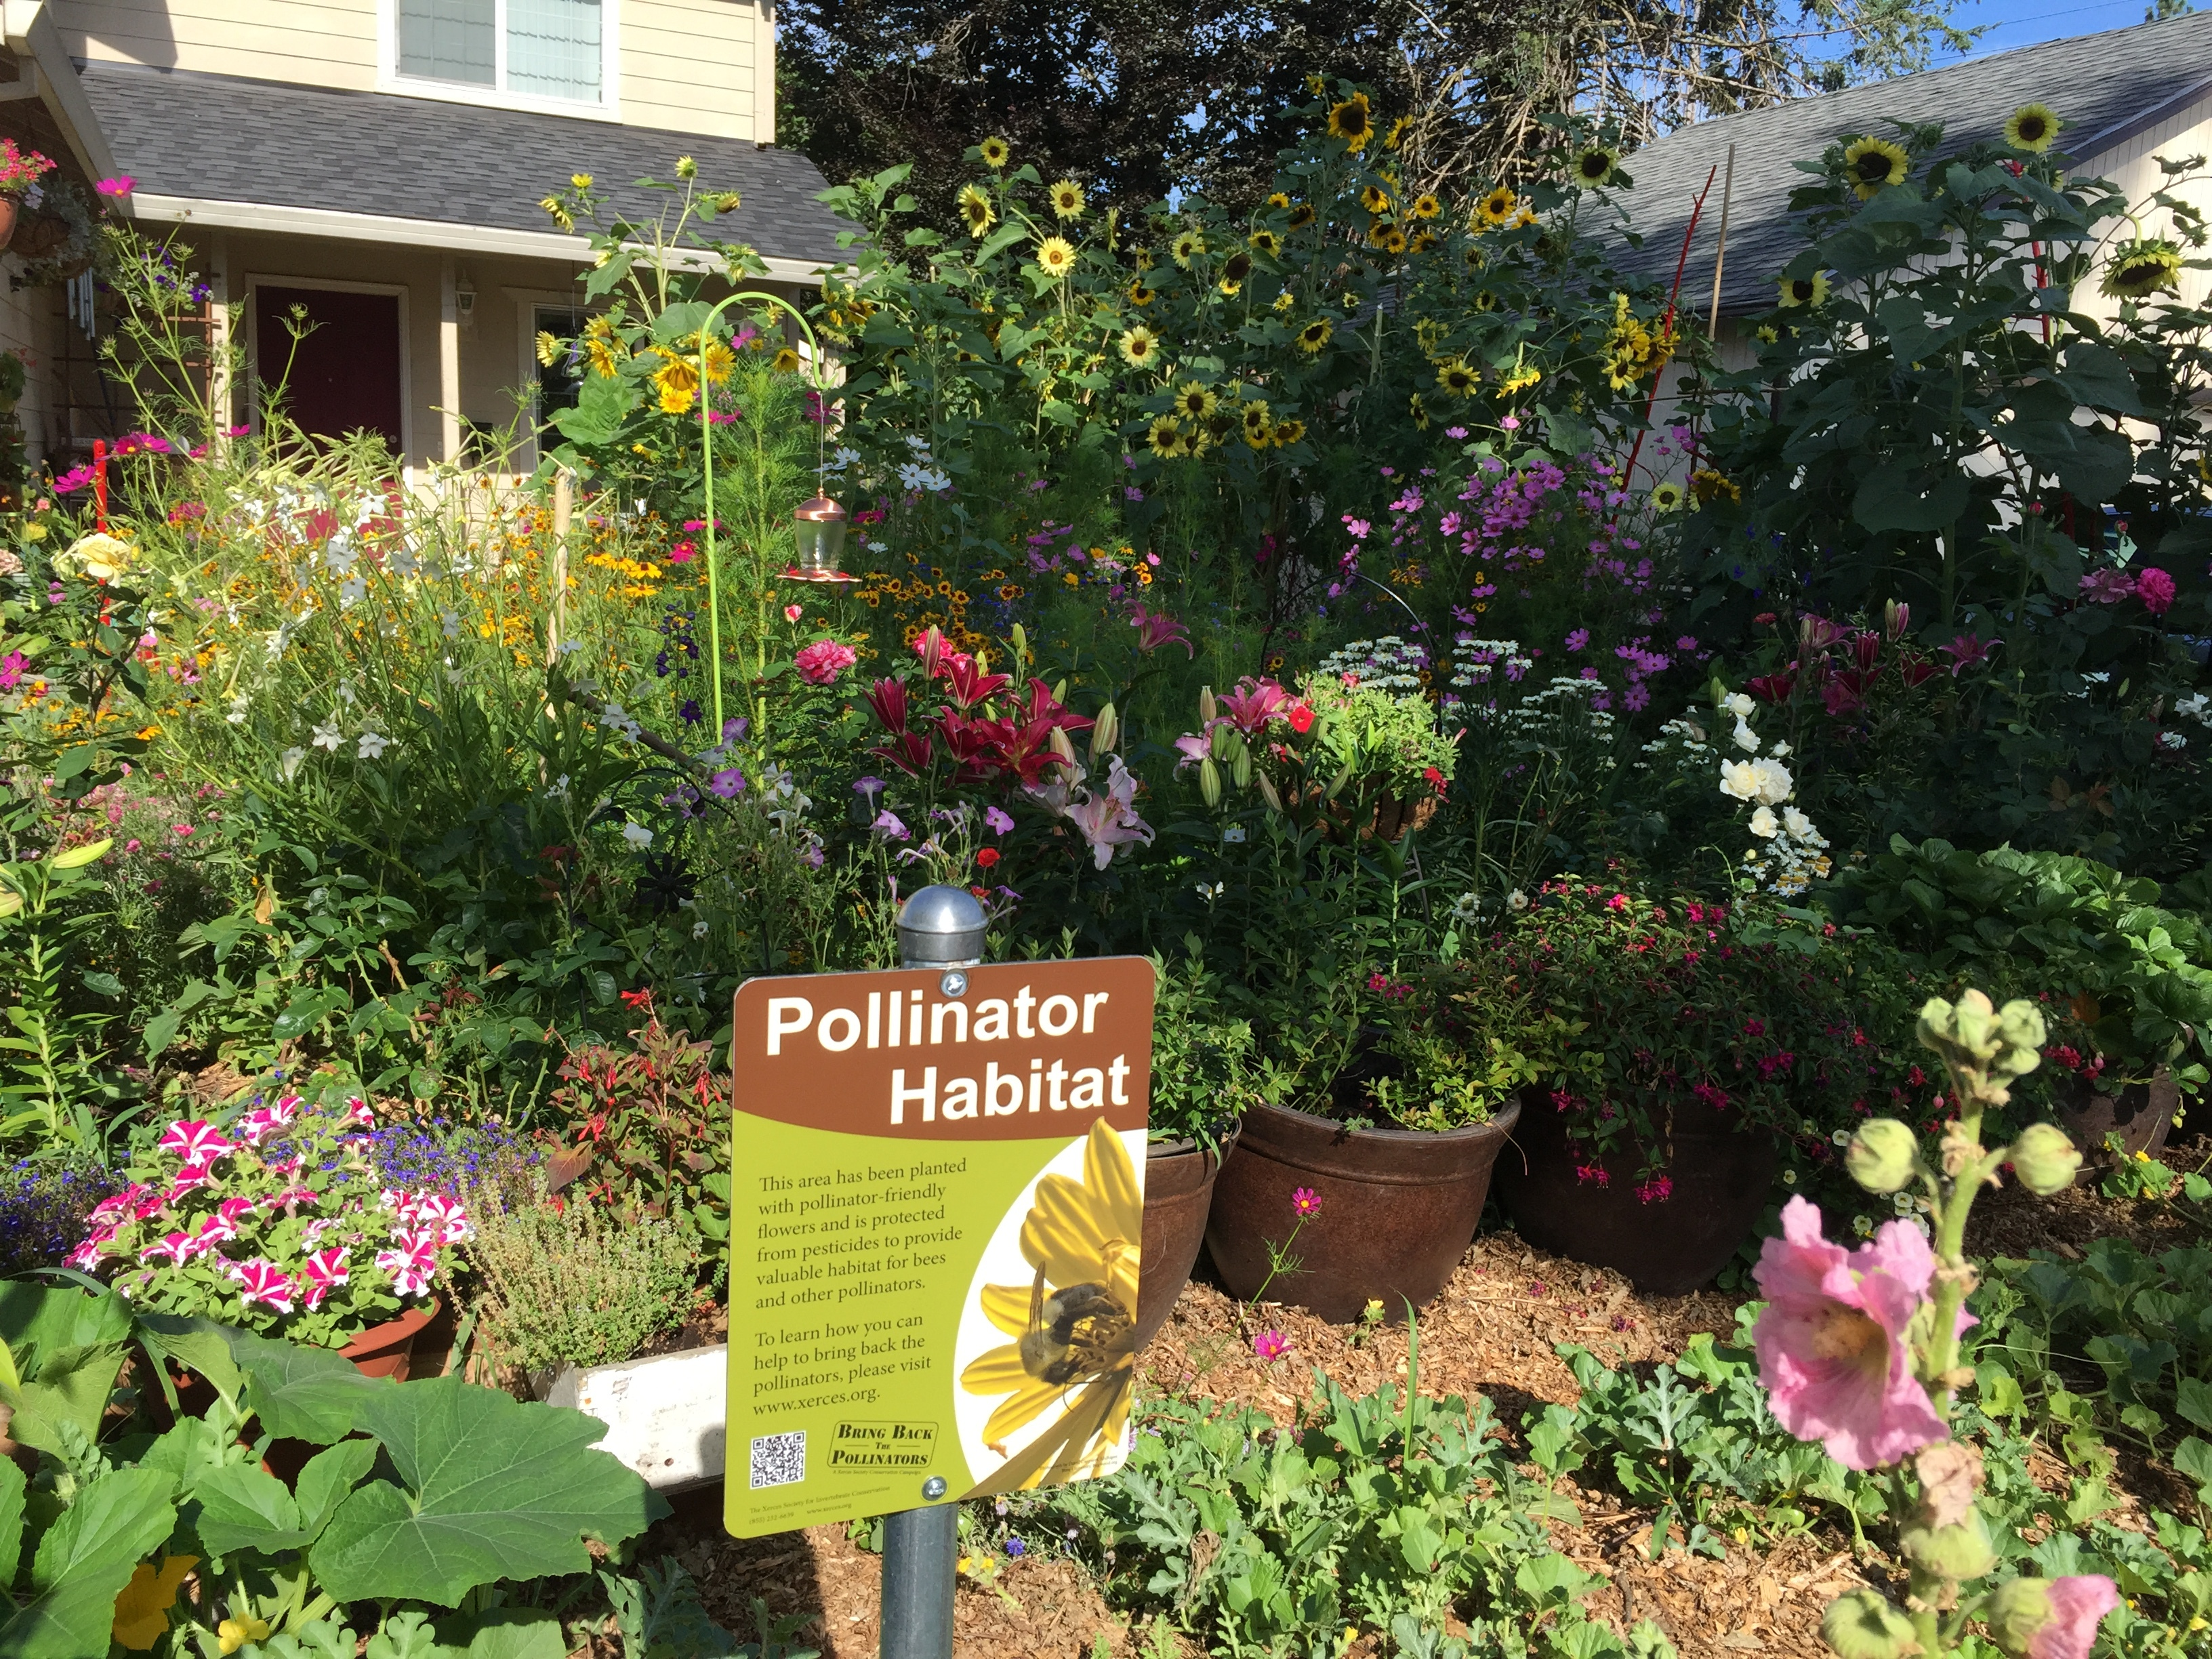 A beautiful, colorful garden is bursting with a variety of blooms. In the foreground is a Xerces Society pollinator habitat sign.